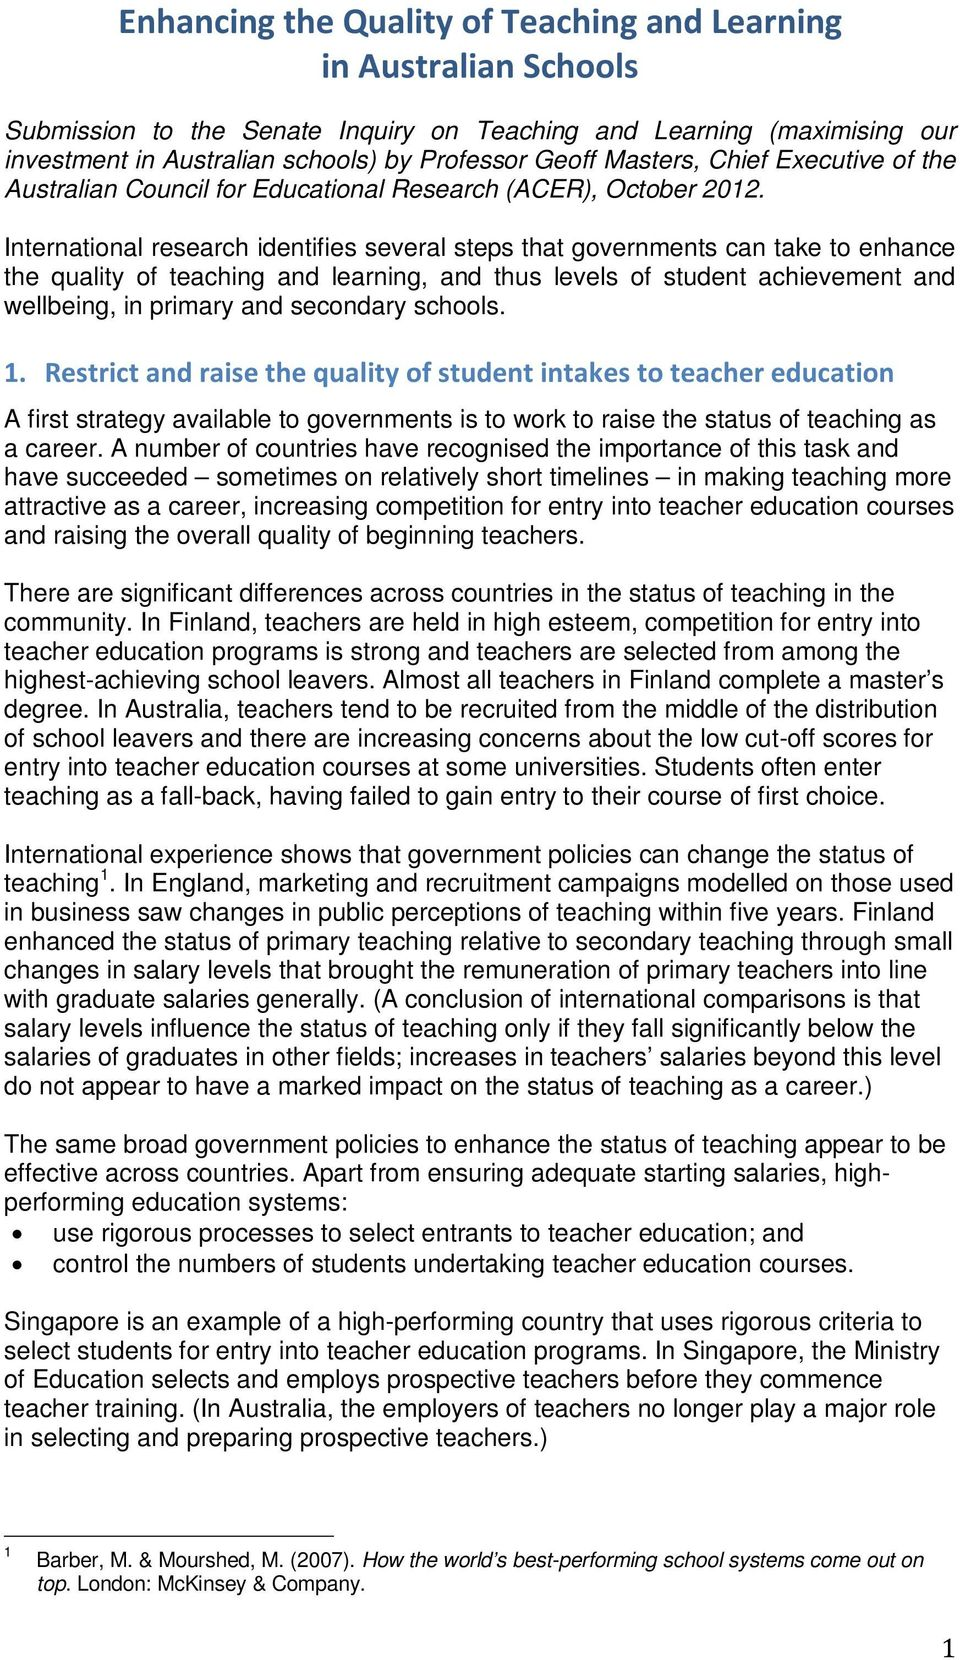 International research identifies several steps that governments can take to enhance the quality of teaching and learning, and thus levels of student achievement and wellbeing, in primary and